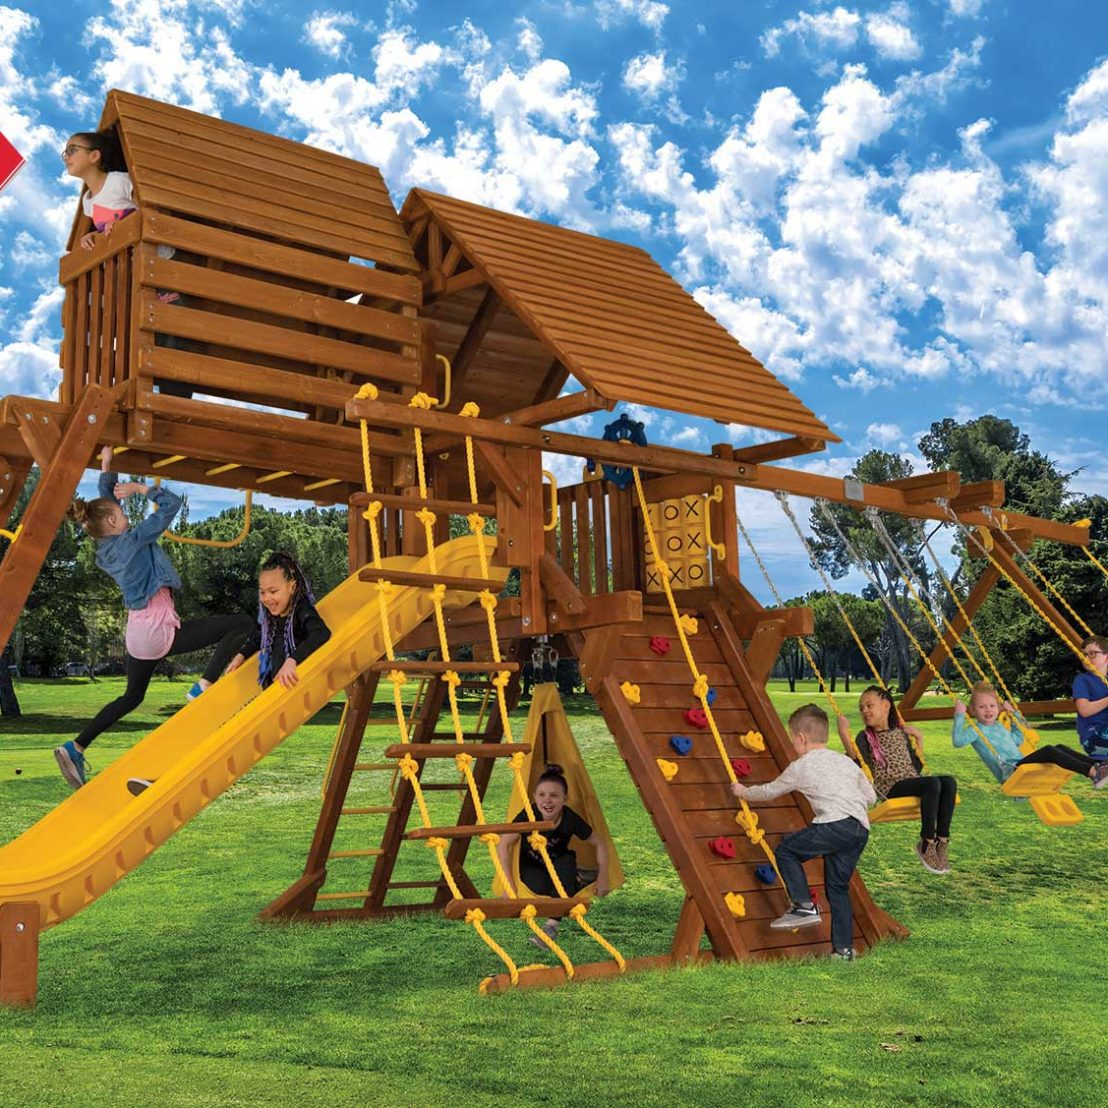 Sunshine Turbo Castle Pkg IV Wooden Swing Sets